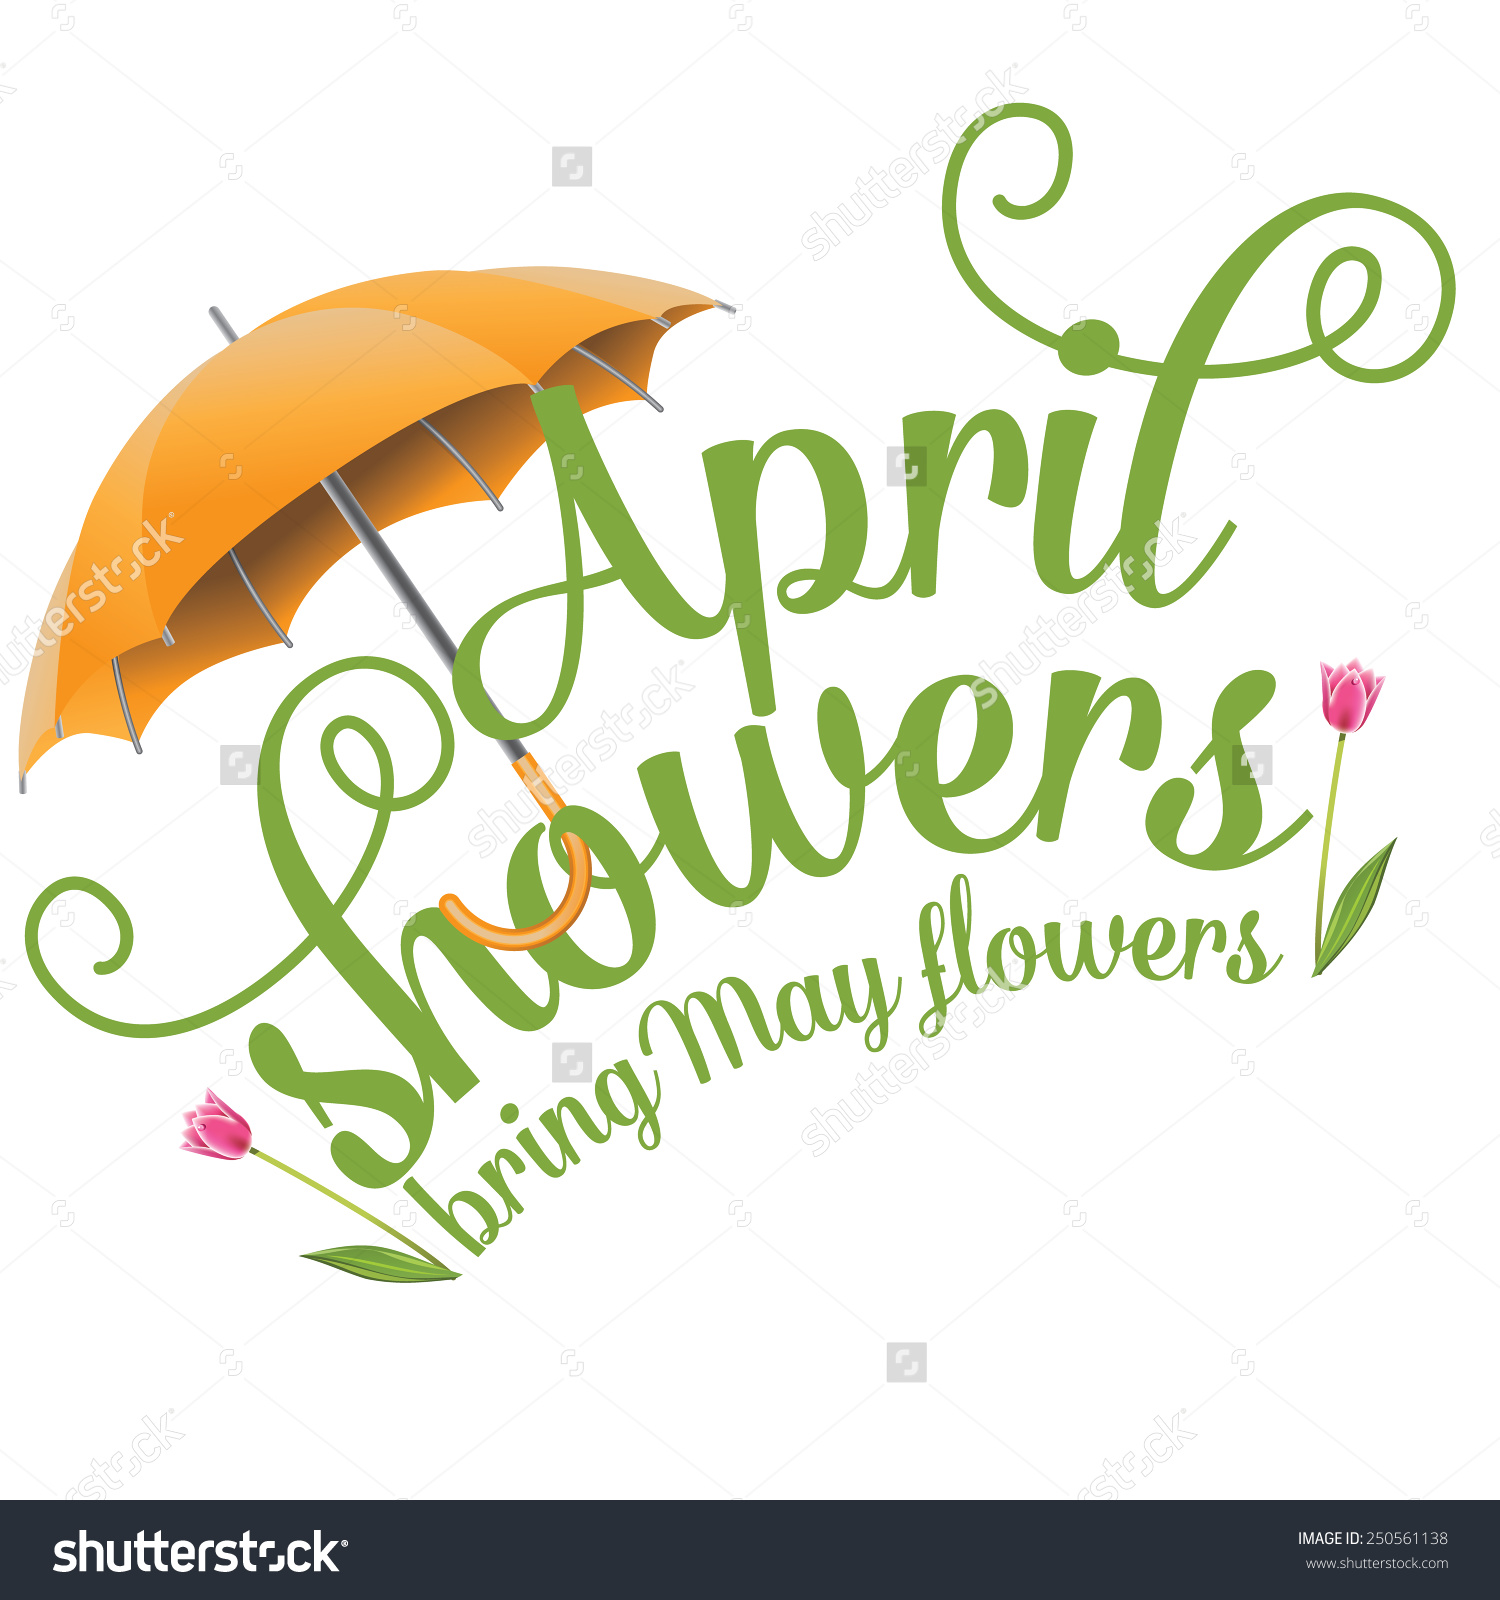 April showers clipart to color banner royalty free library April Showers Bring May Flowers Design Stock Vector 250561138 ... banner royalty free library